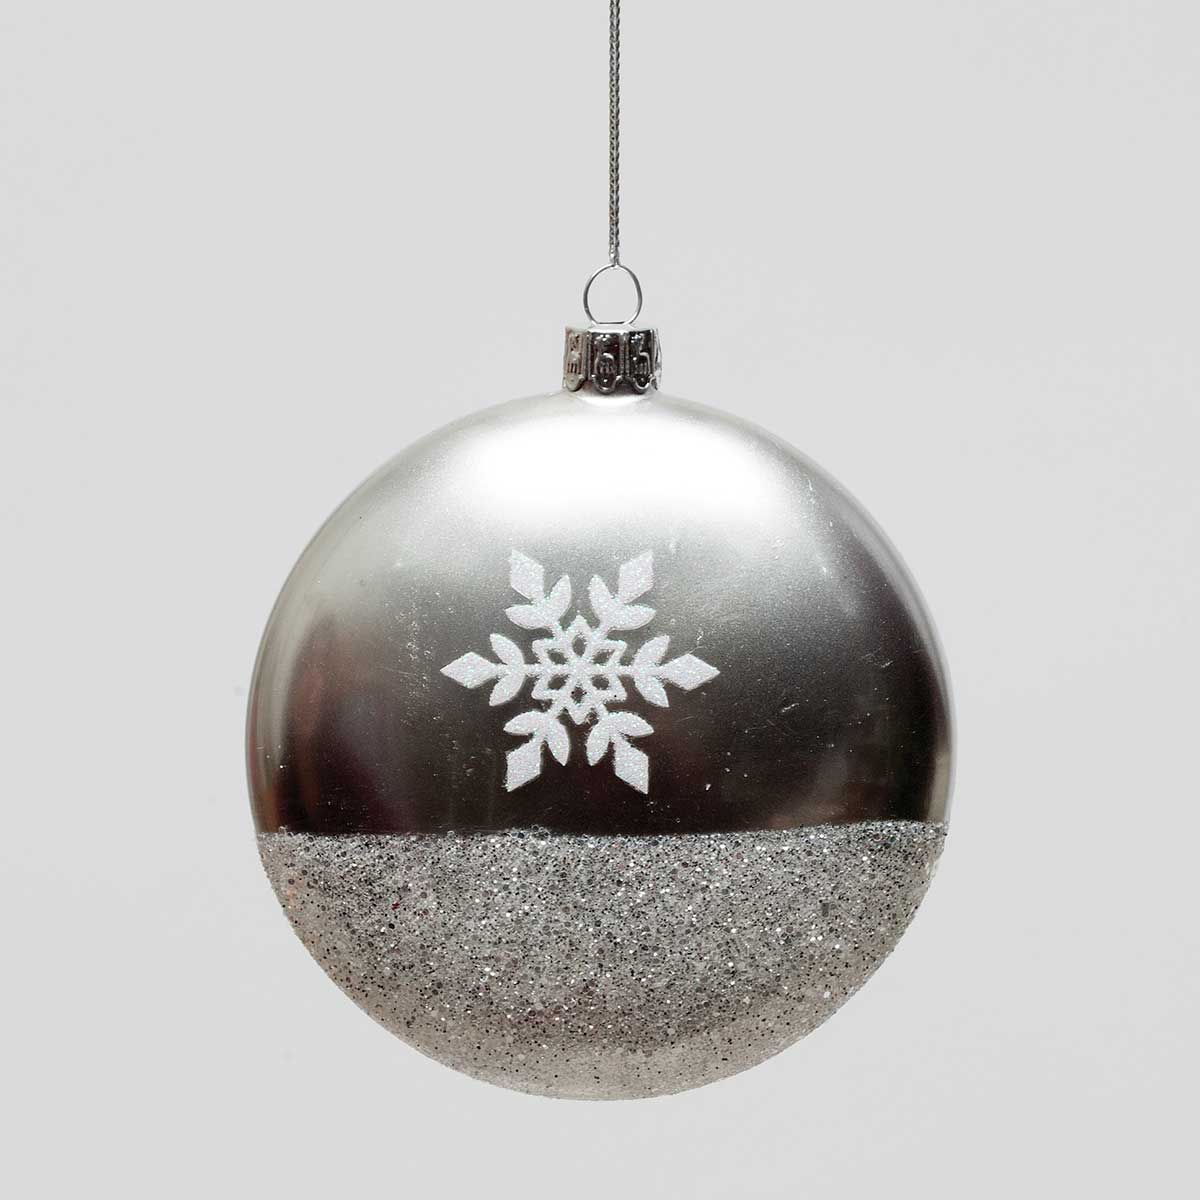 Snowflake Glass Ball Ornament